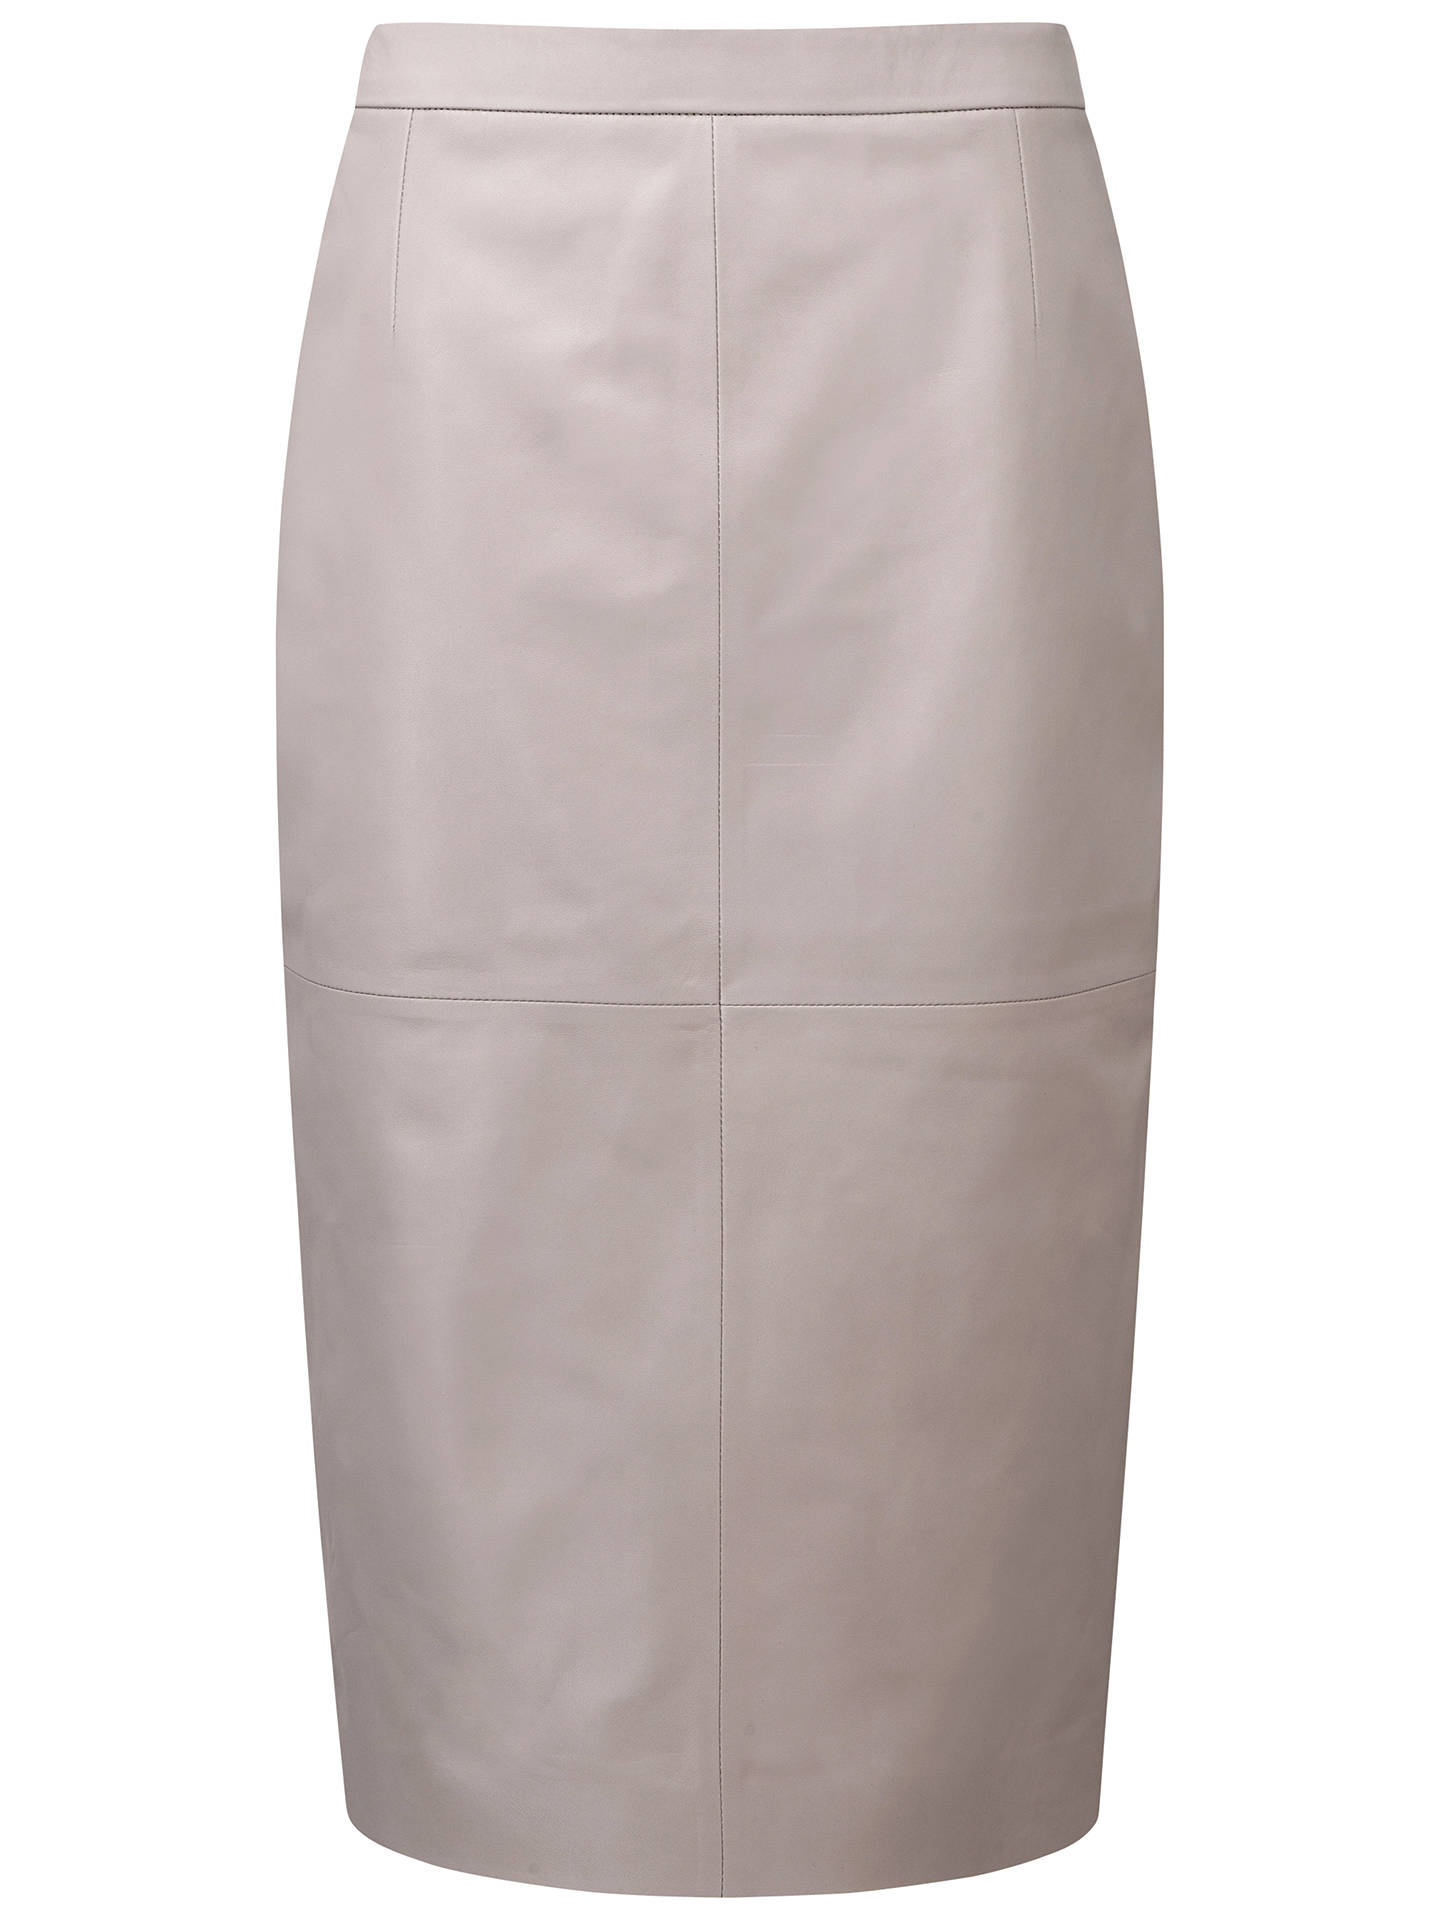 c833a9c5e7 Buy Pure Collection Maitland Leather Skirt, Grey/Taupe, 8 Online at  johnlewis.